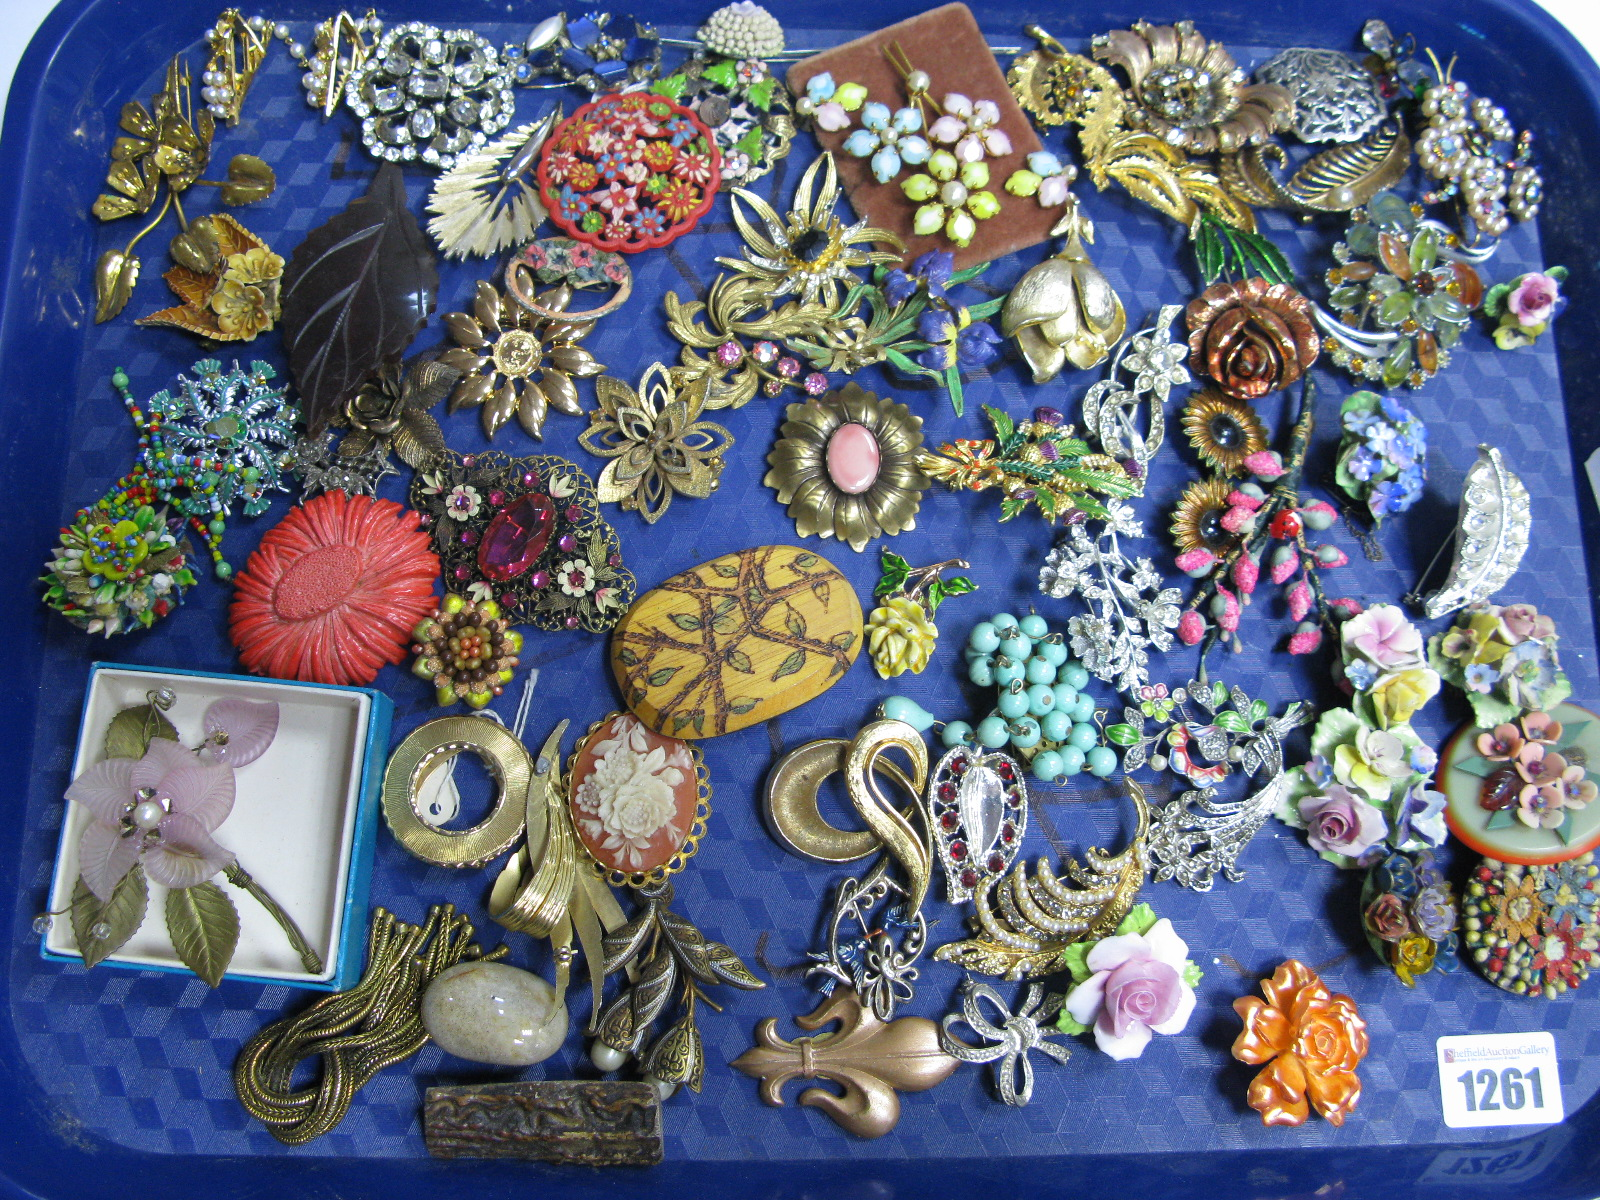 Lot 1261 - A Crown Staffordshire England Floral Brooch; together with other floral costume brooches,